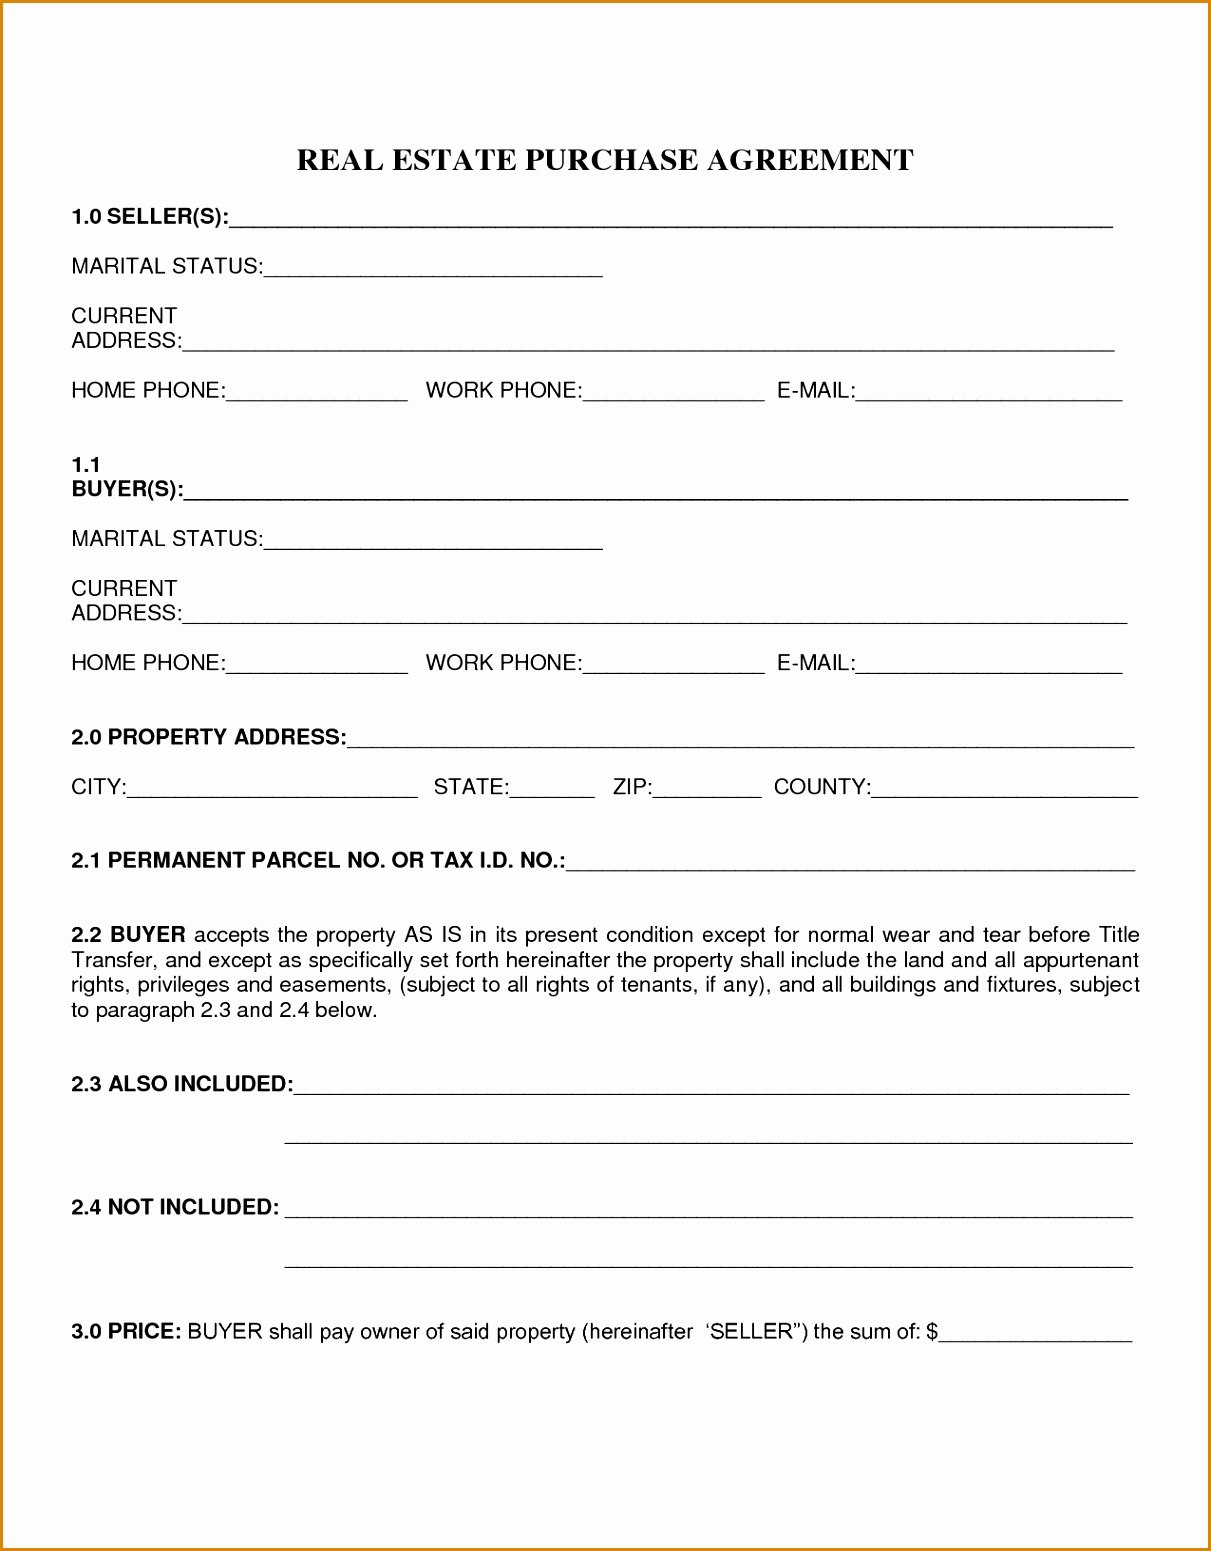 Homerchase Agreement Template Ideas Simple Real Estate Sales Throughout Mobile Home Purchase Agreement Template